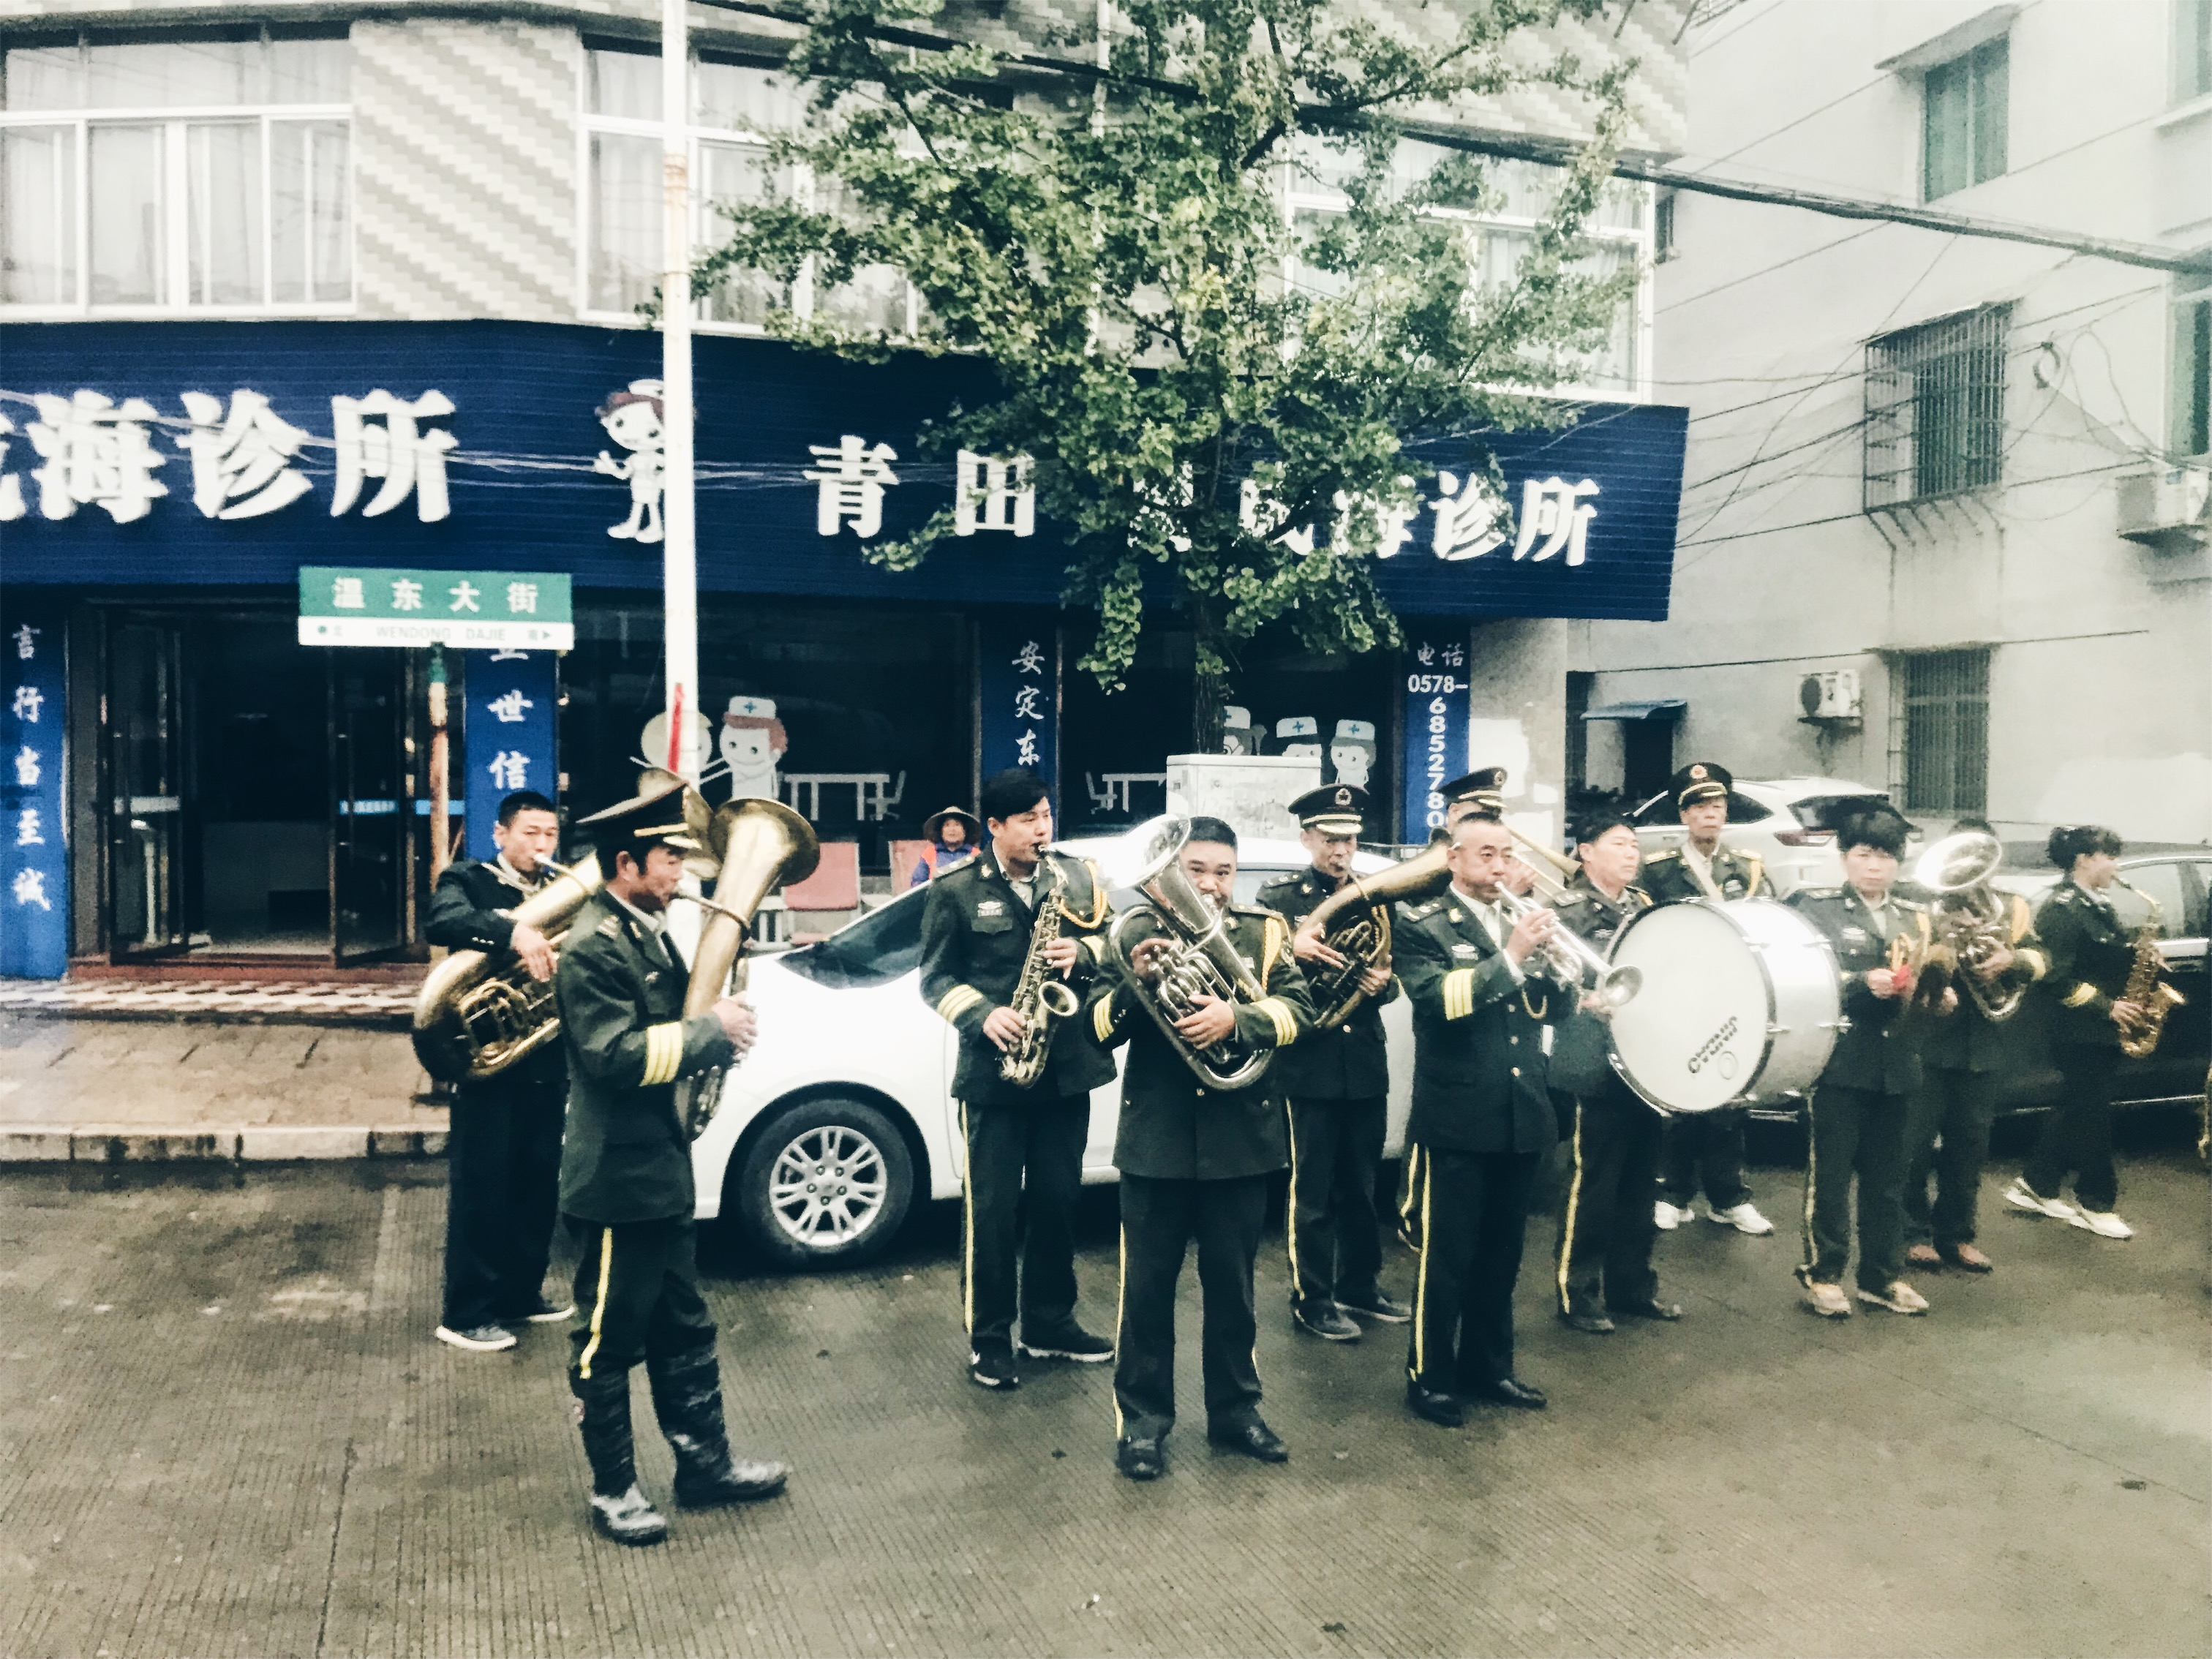 Chinese funeral - fanfare waiting